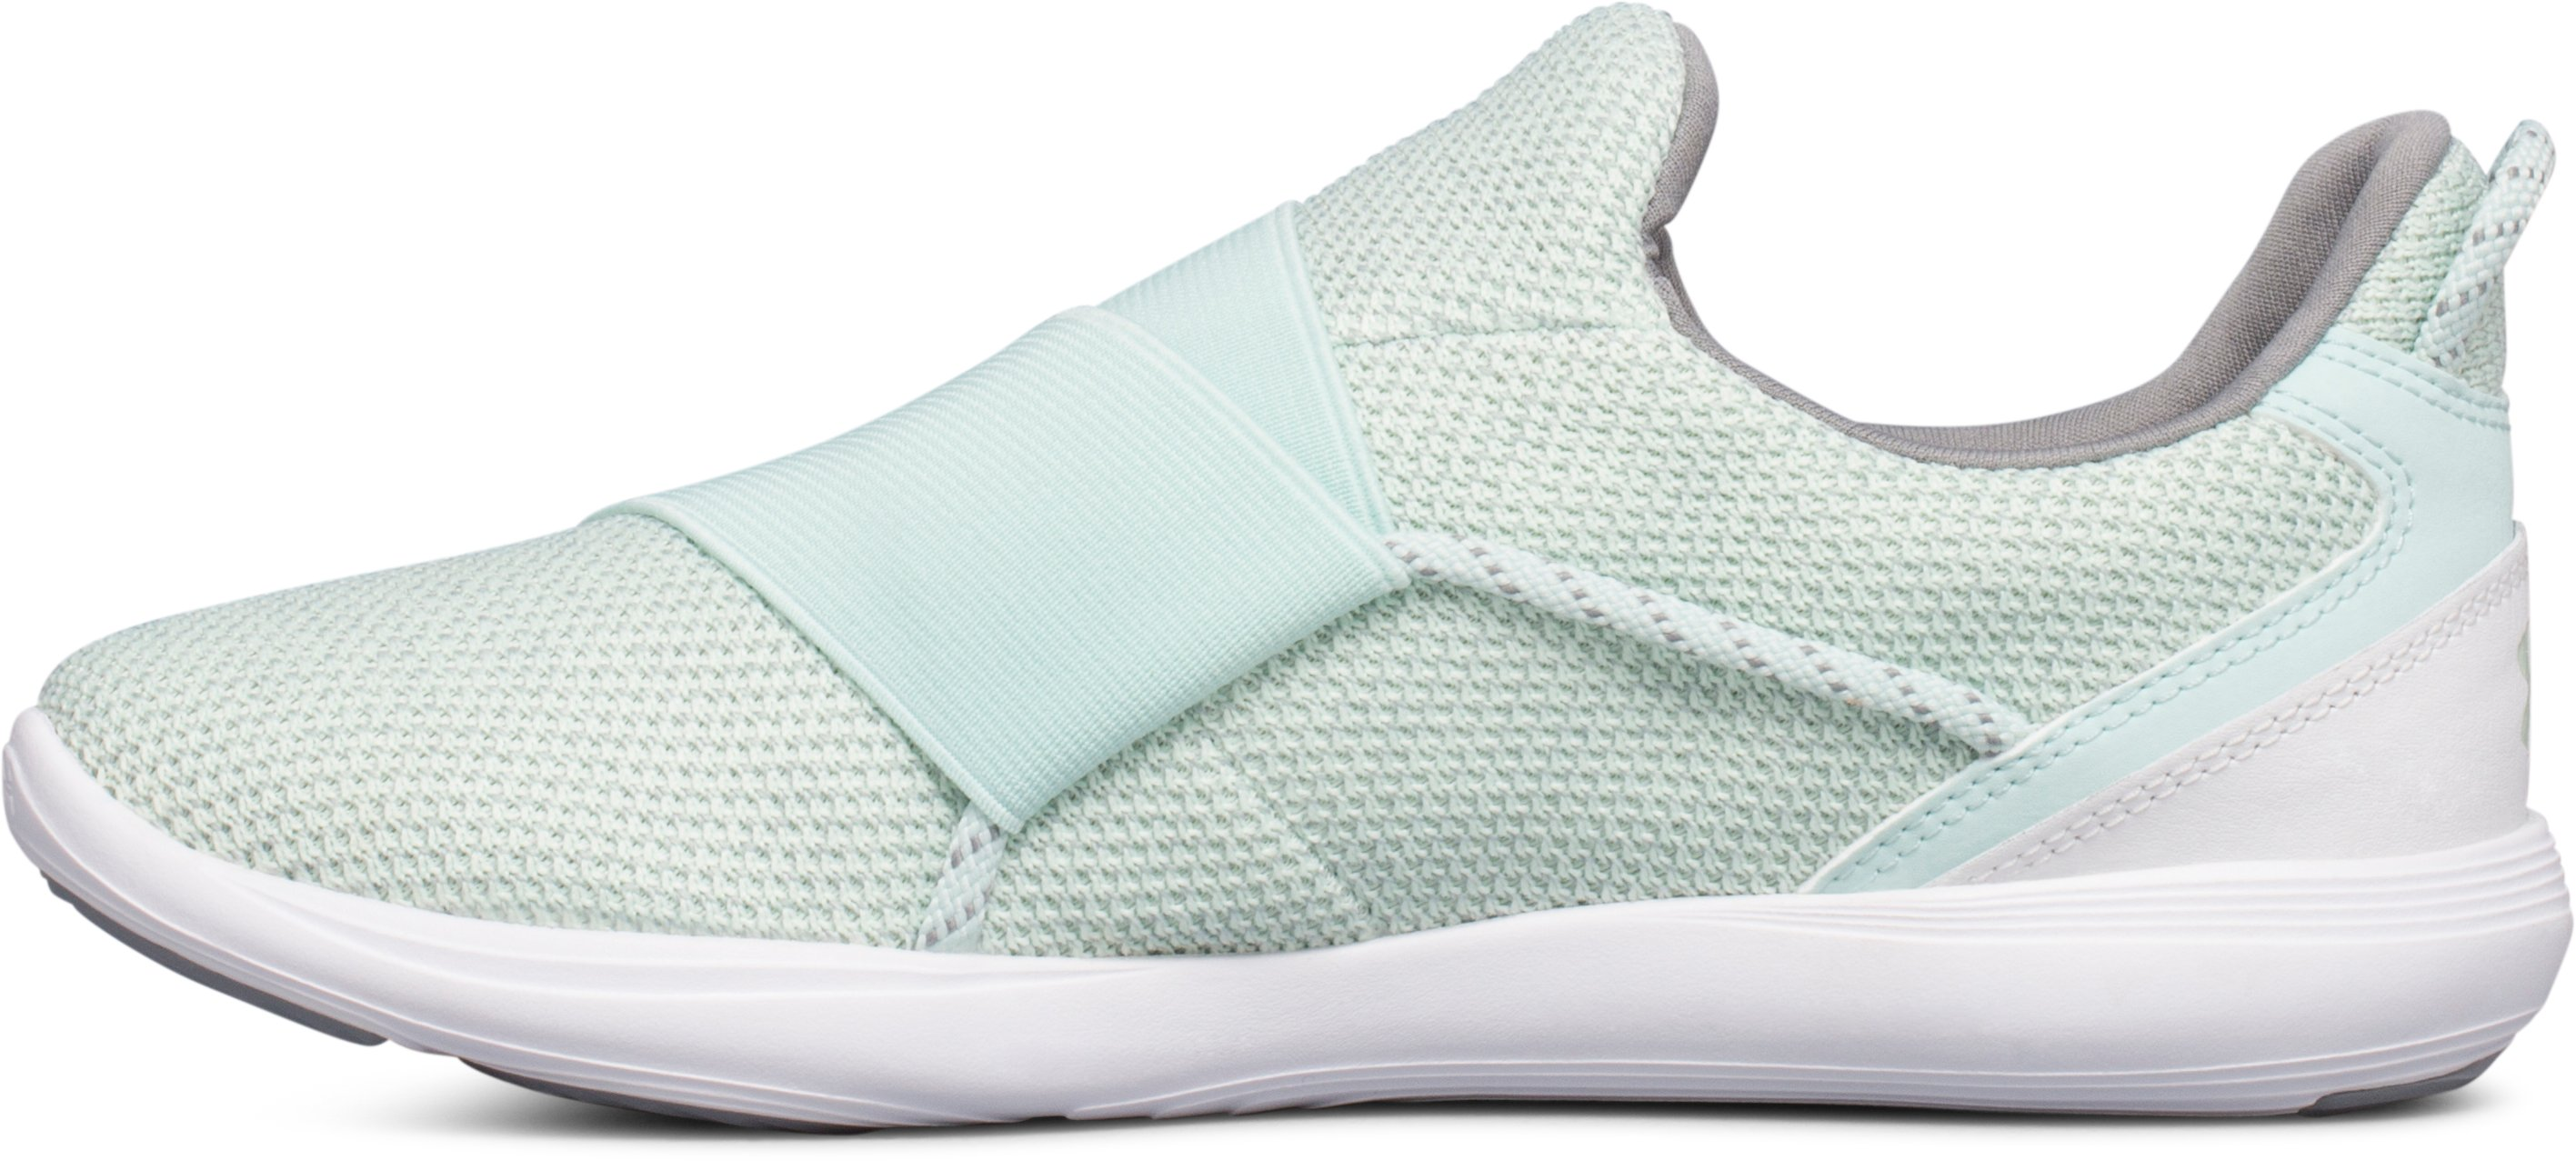 Women's UA Precision X Training Shoes, REFRESH MINT,